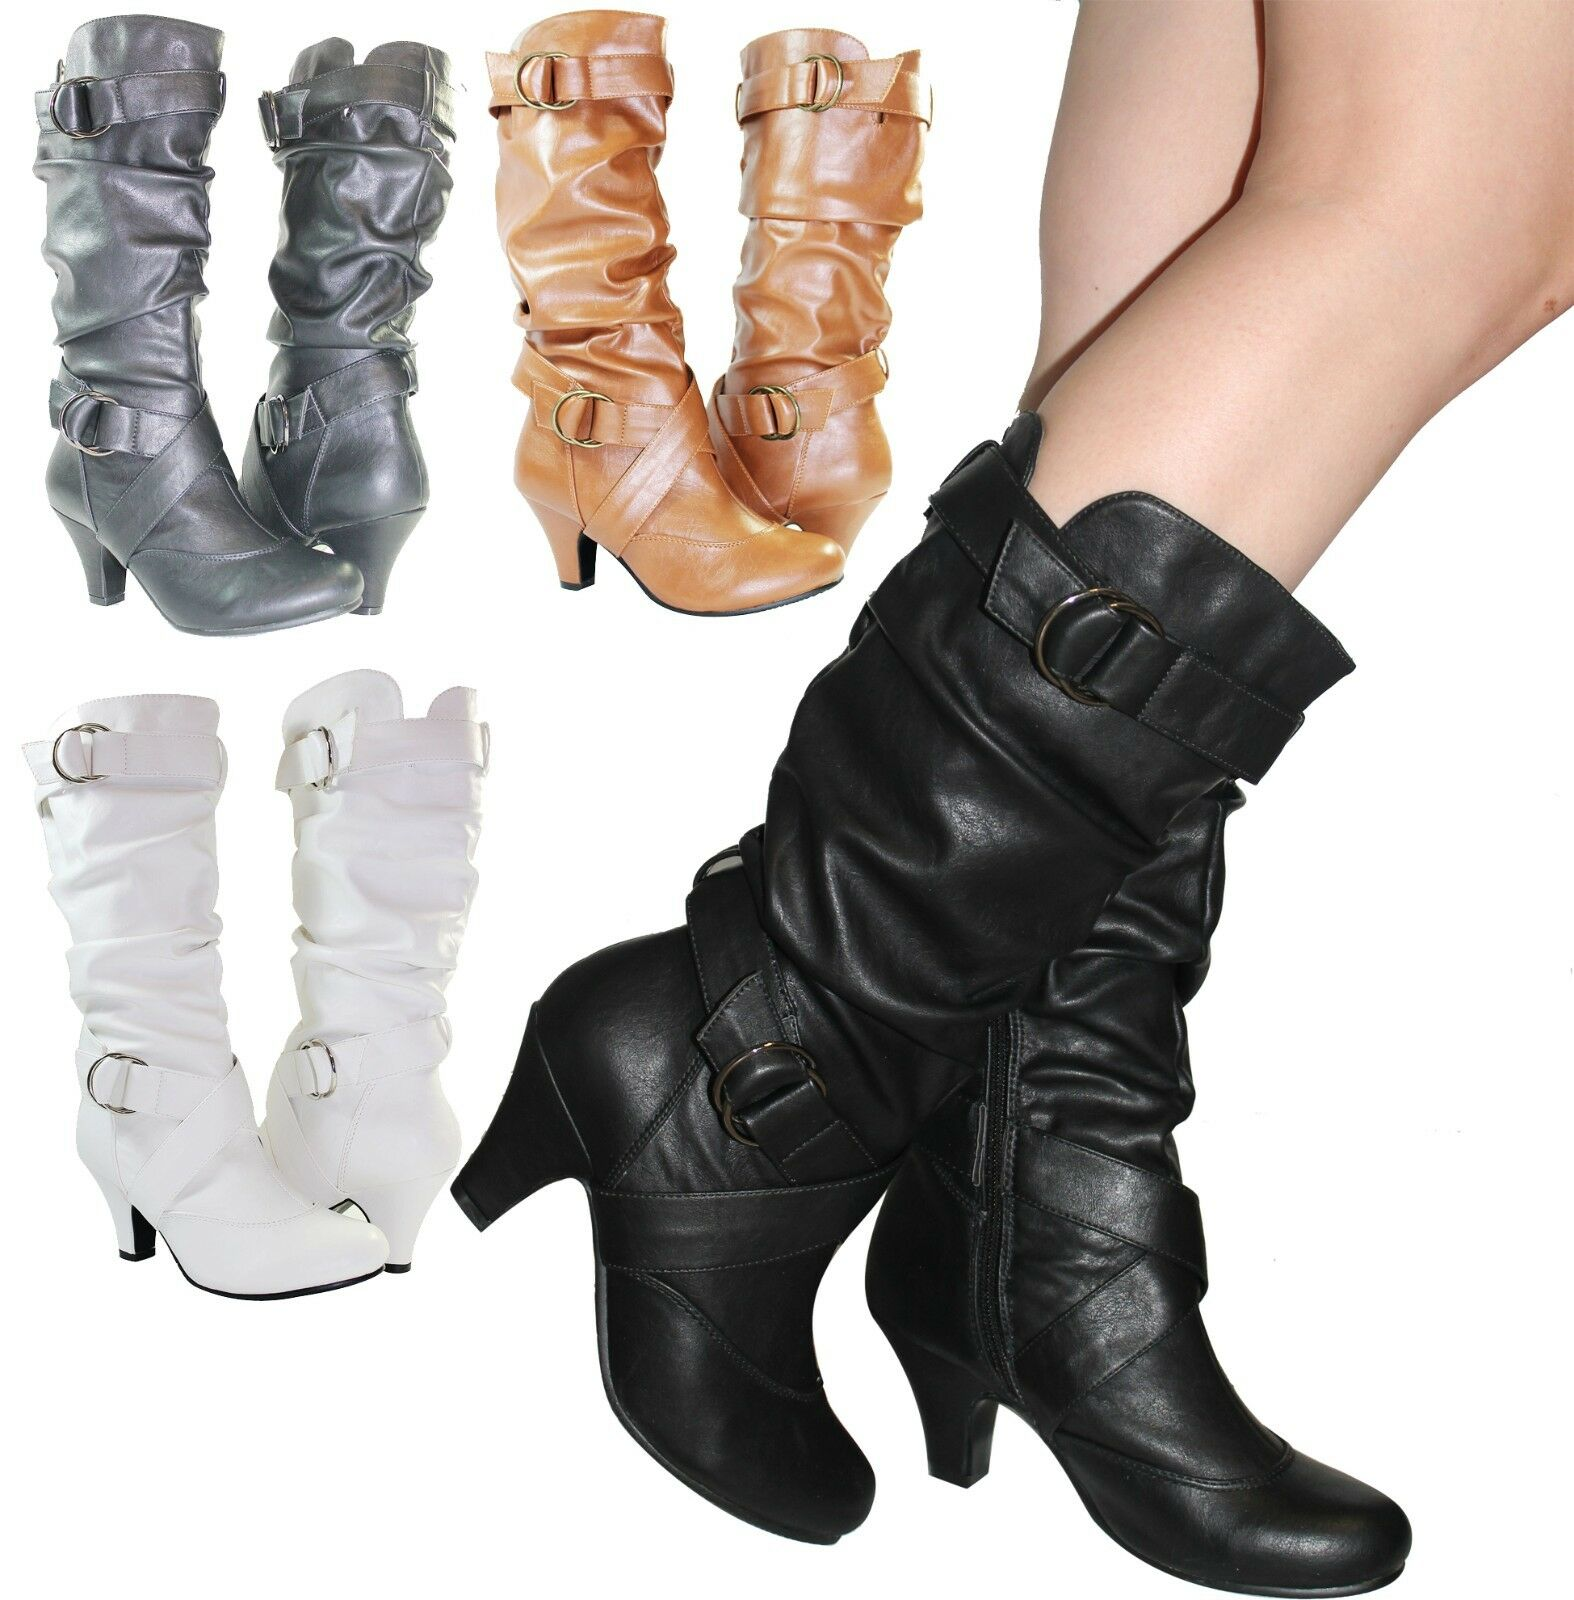 Women Boots Kitten Heels Style Fashion Mid Calf Slouch Faux Leather Cross Design